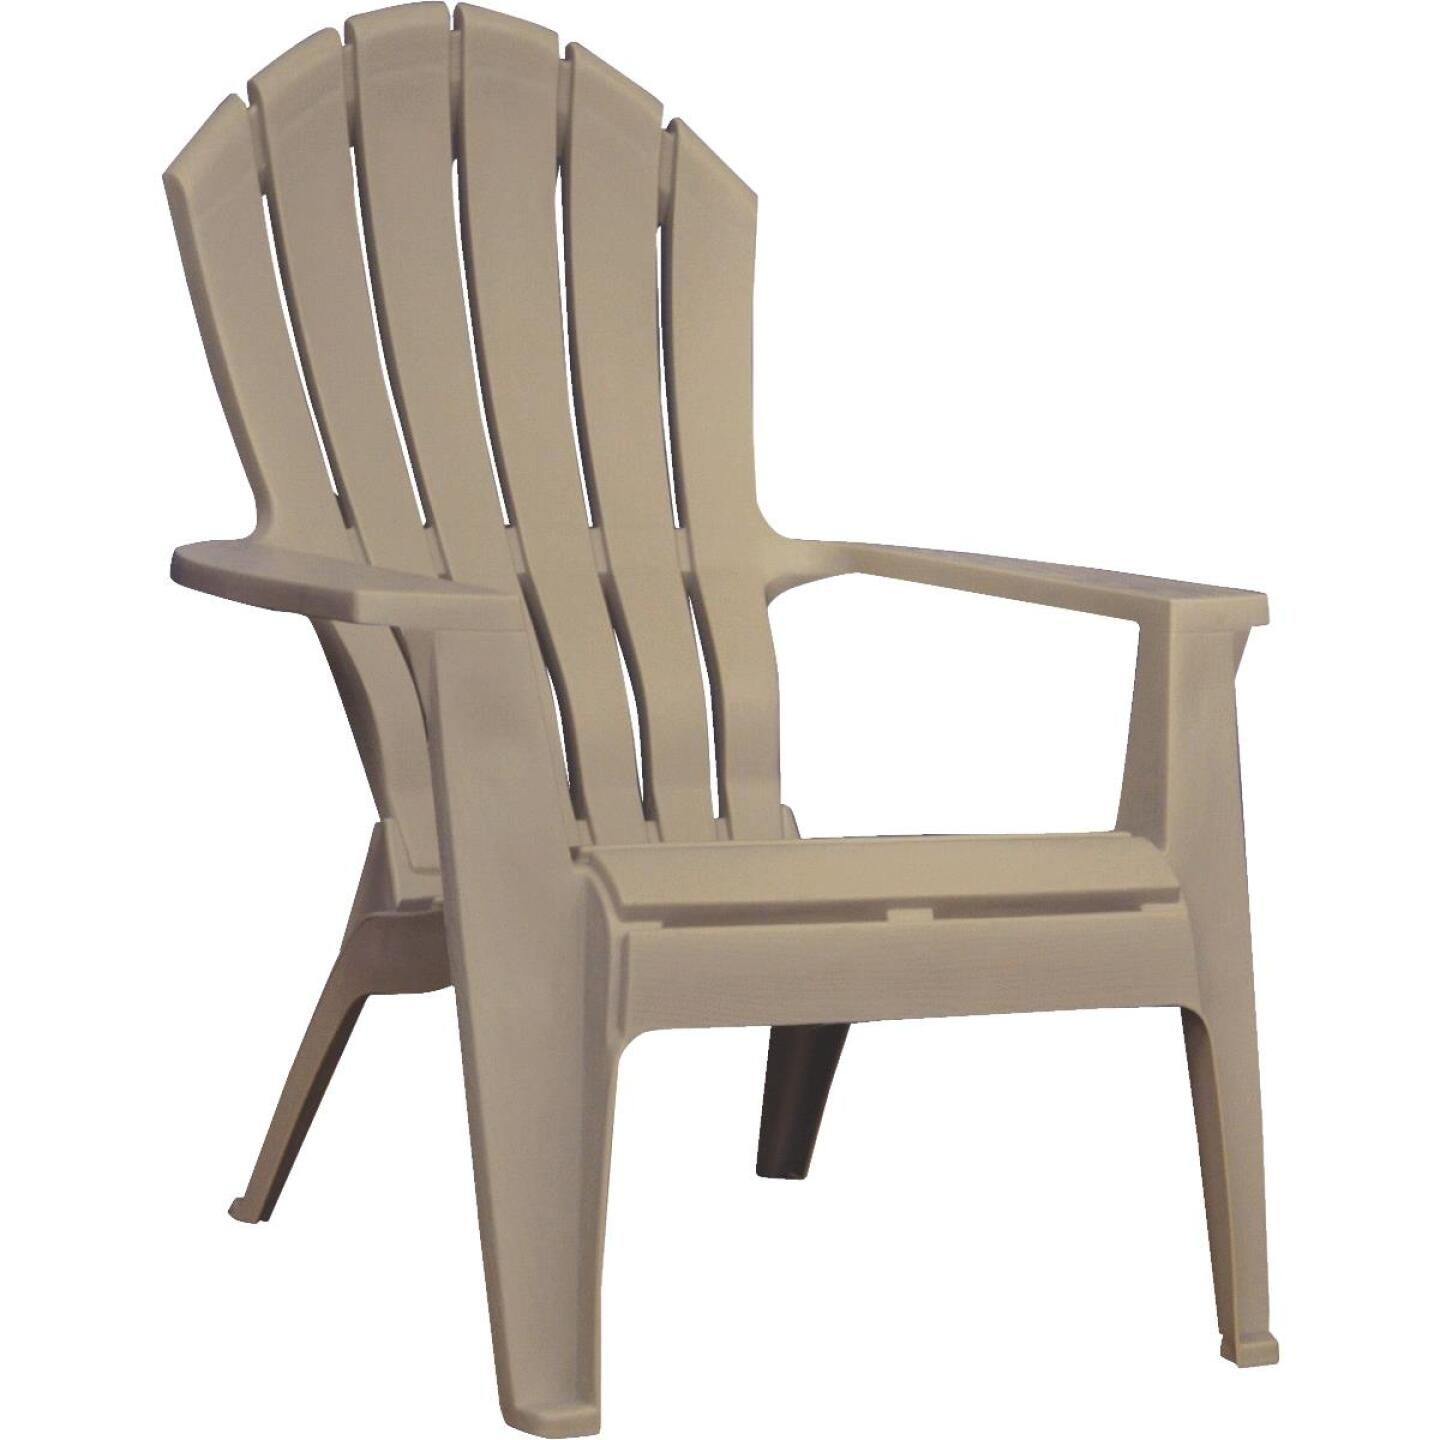 Adams RealComfort Portobello Resin Adirondack Chair Image 1